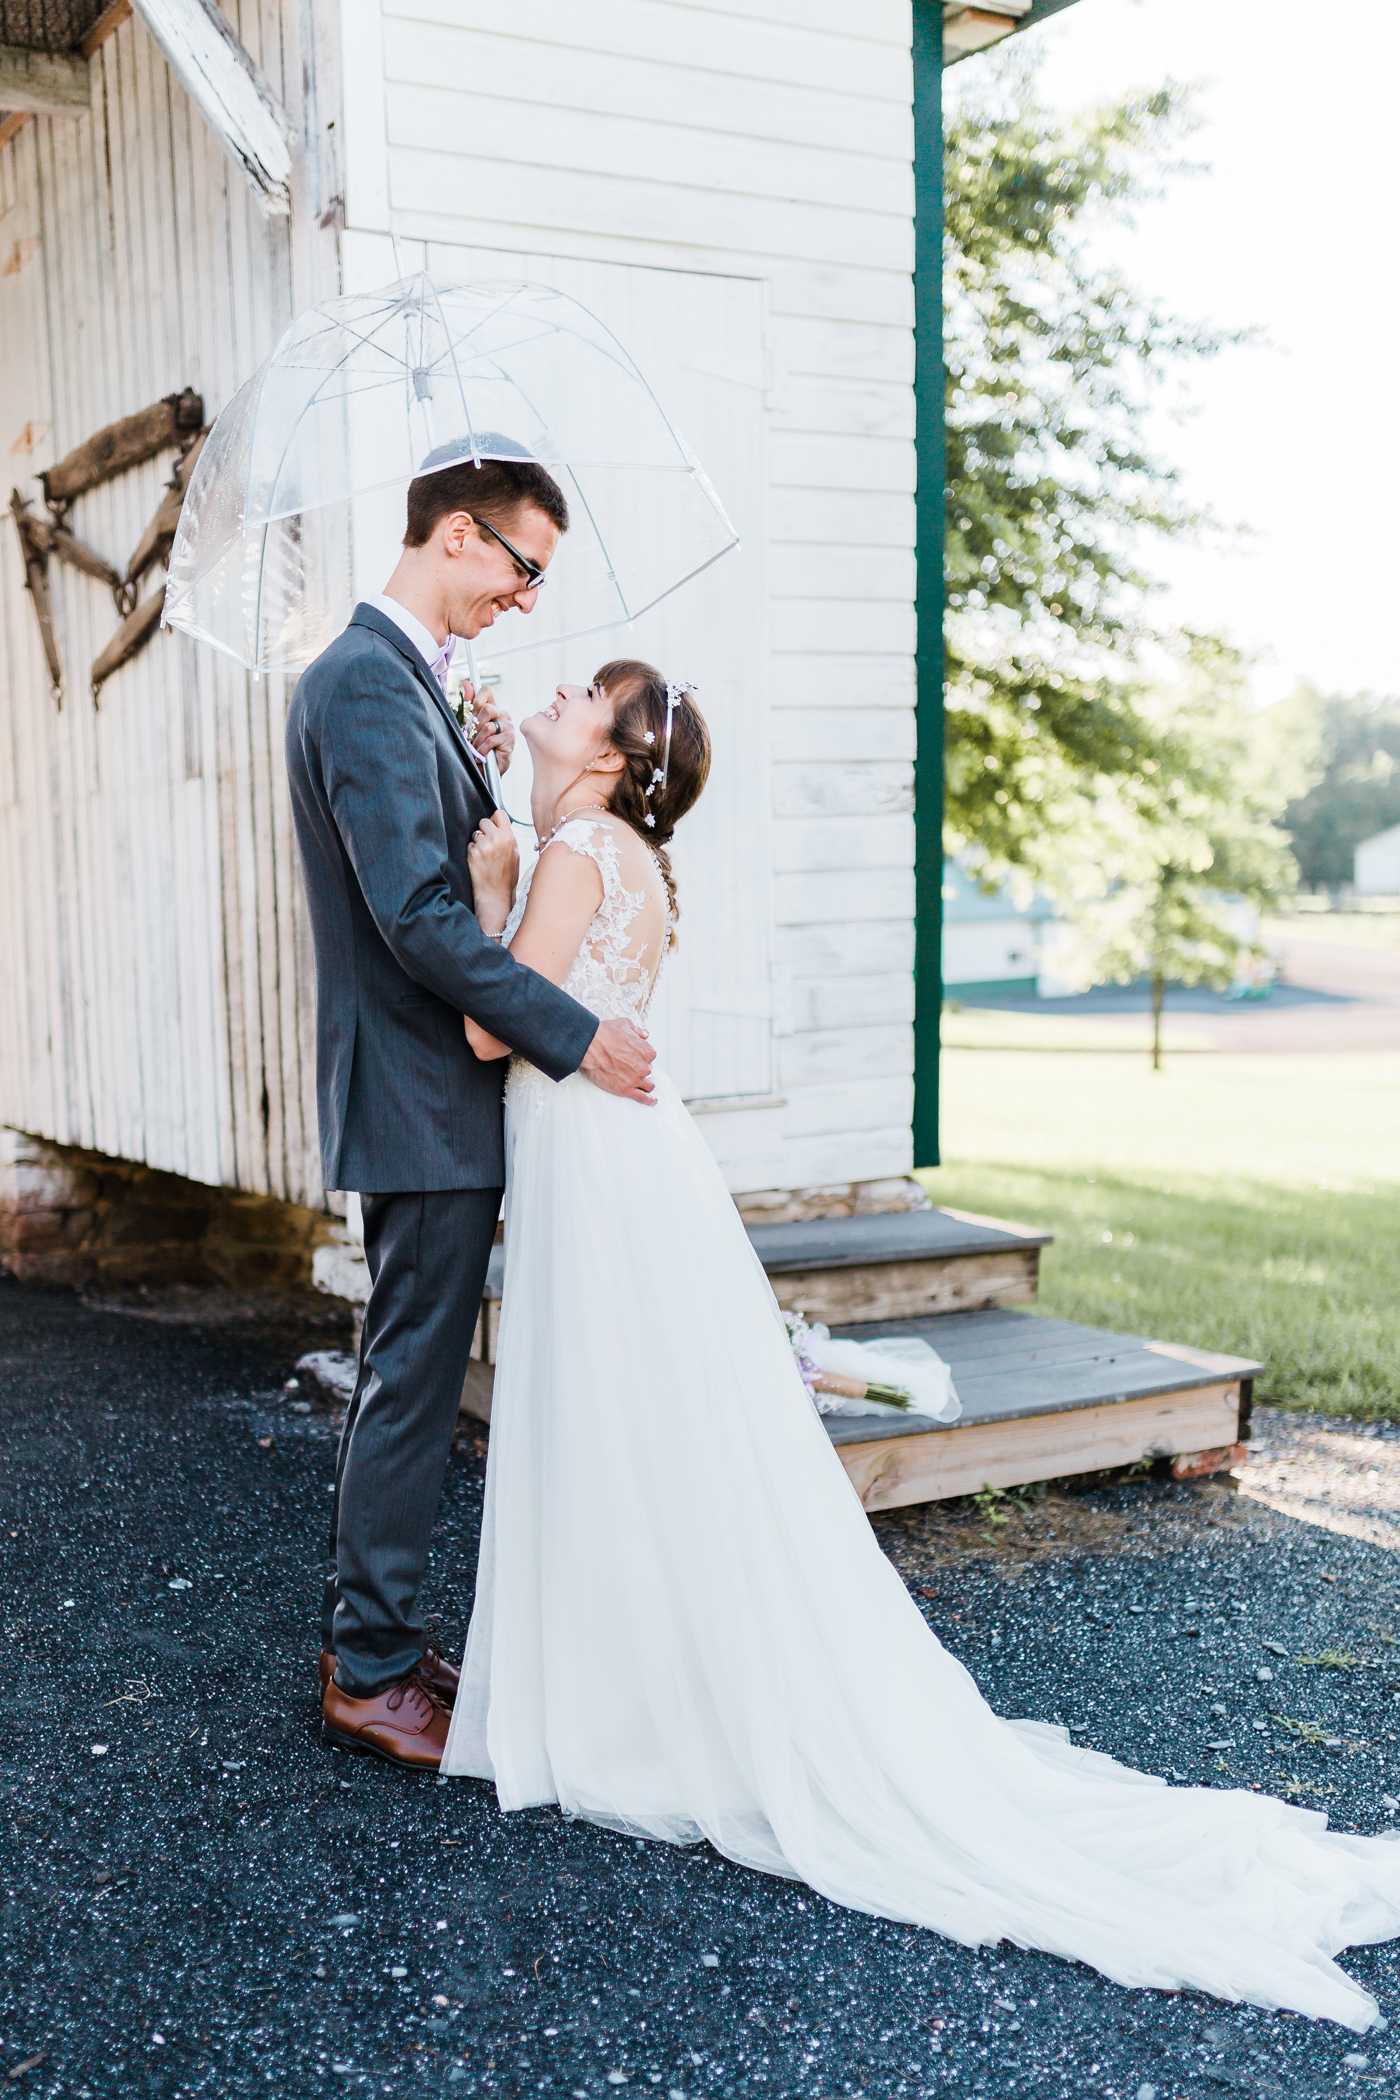 bride and groom together under umbrella after a little rain - rainy wedding inspo - bride and groom with clear umbrella - maryland wedding photographer